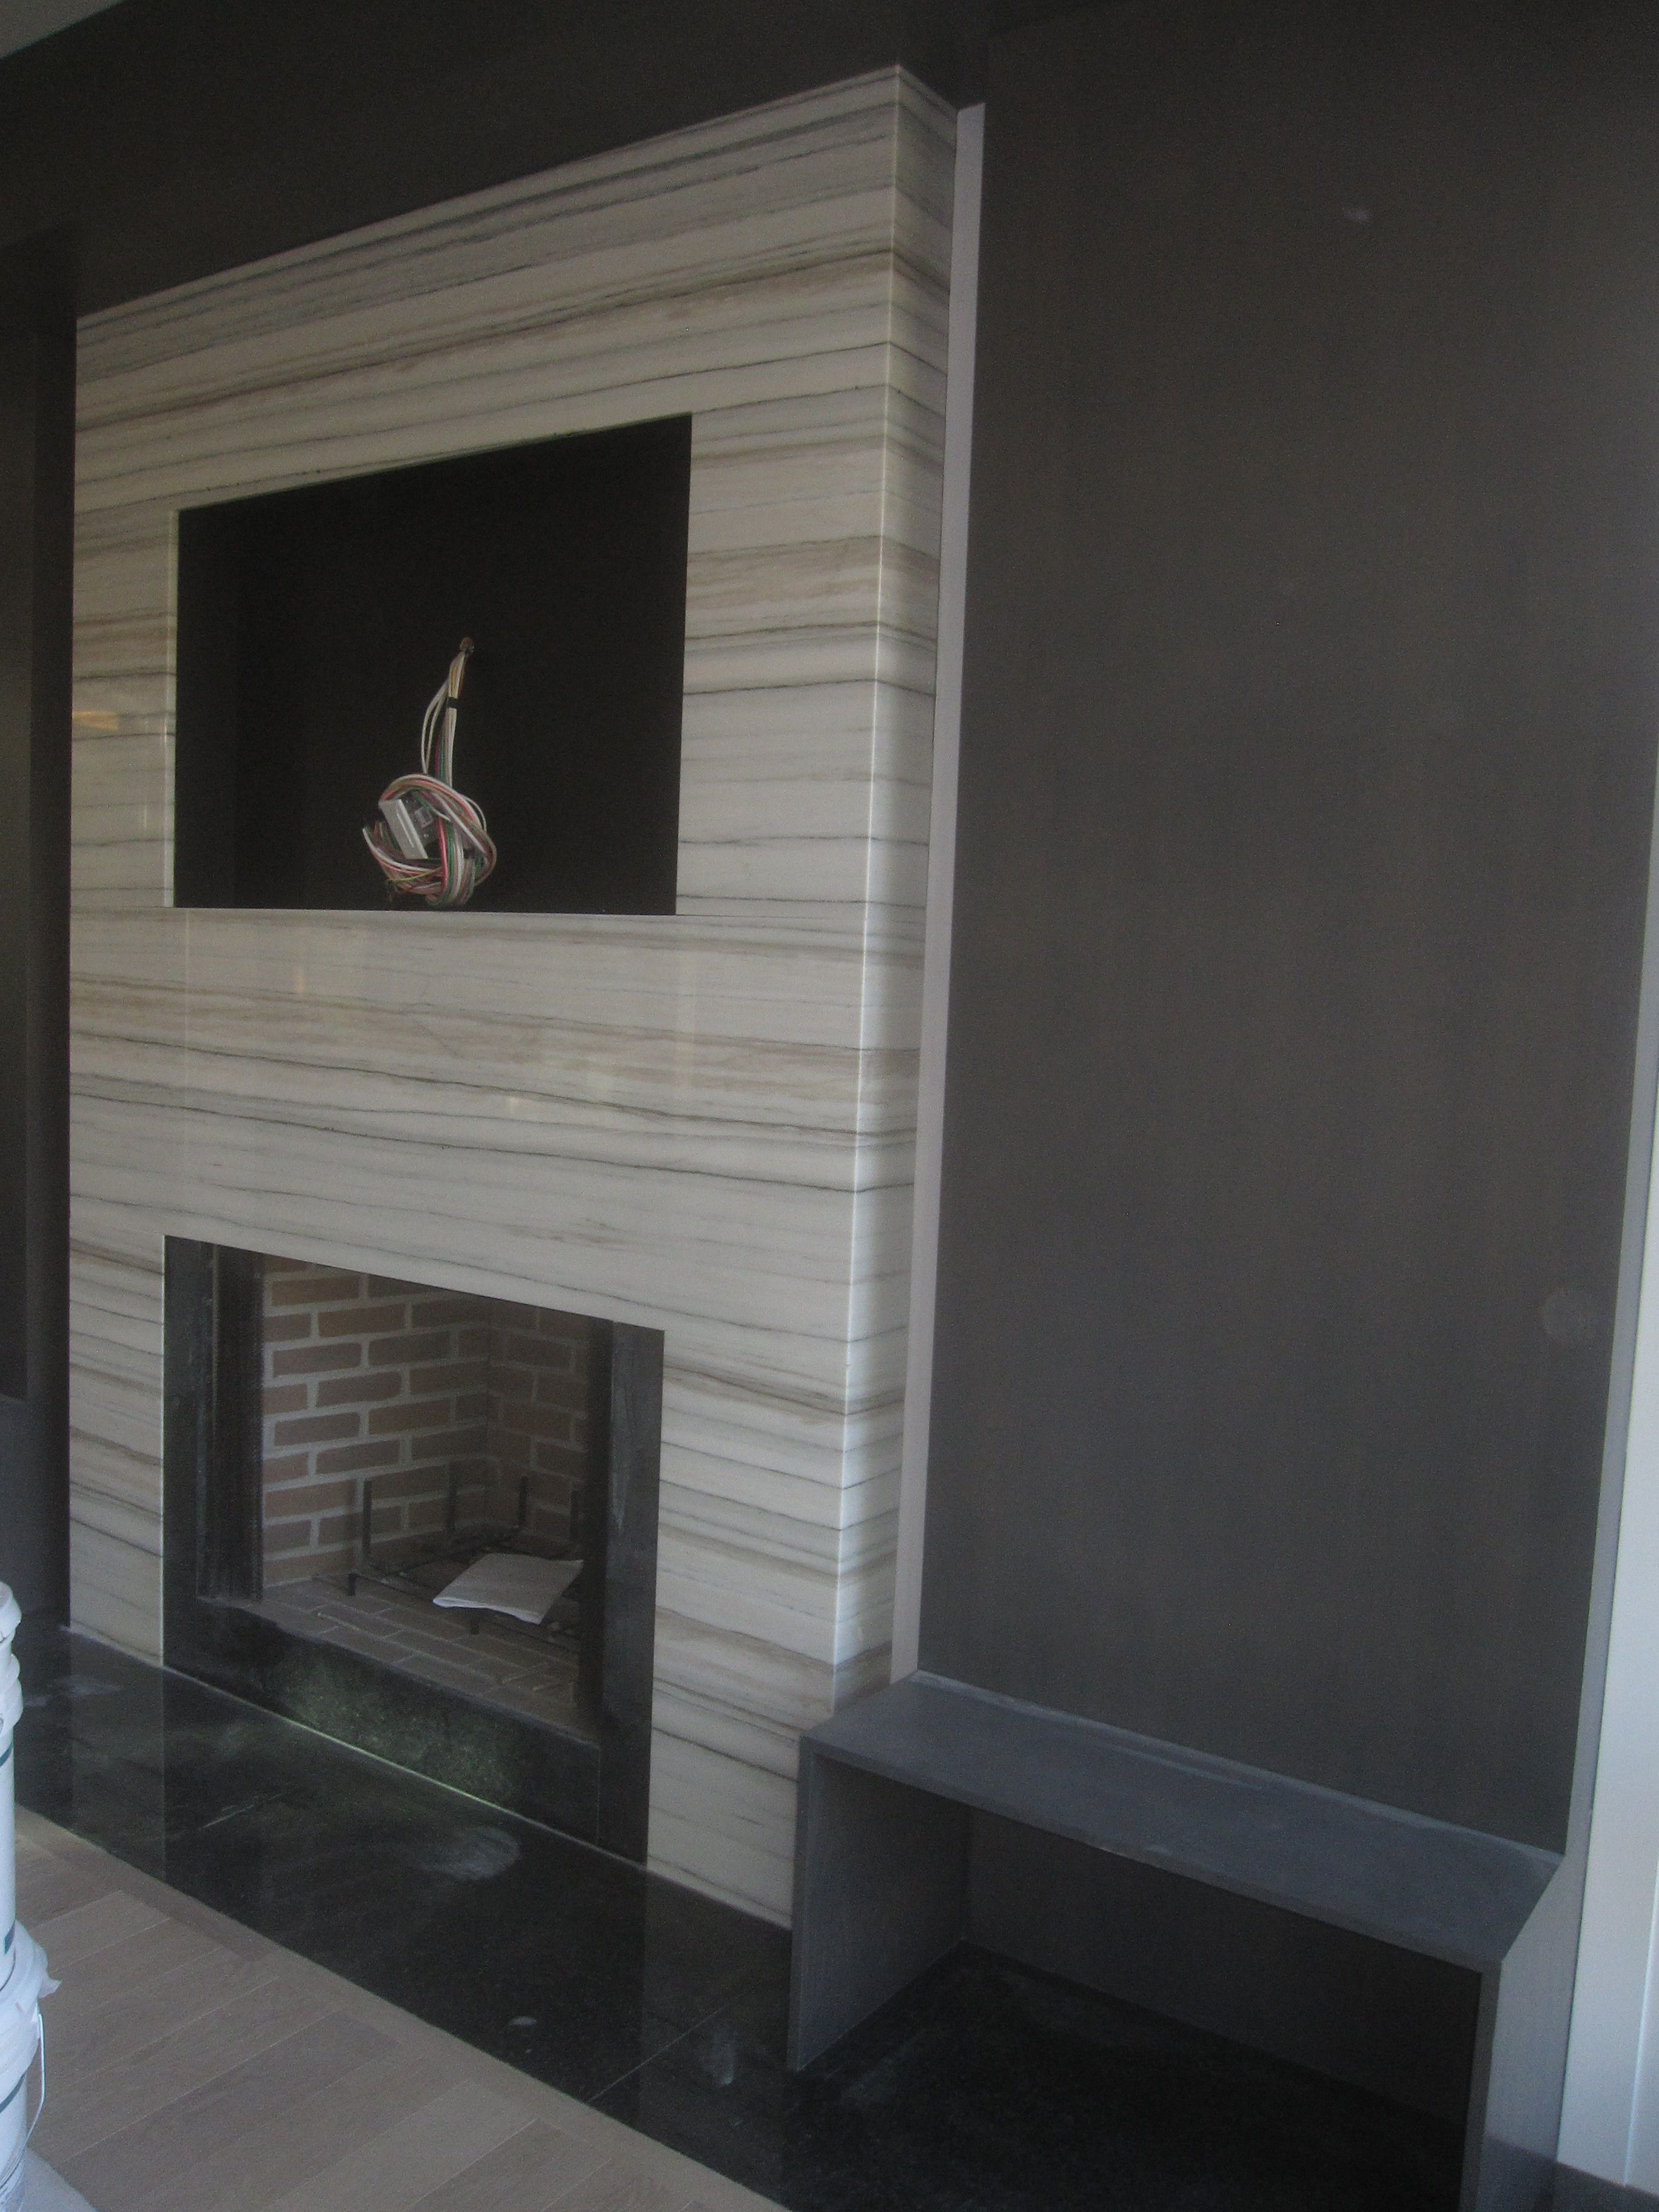 Armstrong Residence Fireplace Surround In Striato Apuano Quartzite Striato Apuano Home Inspiration Creation Fireplace Wall Faux Fireplace Fireplace Tile